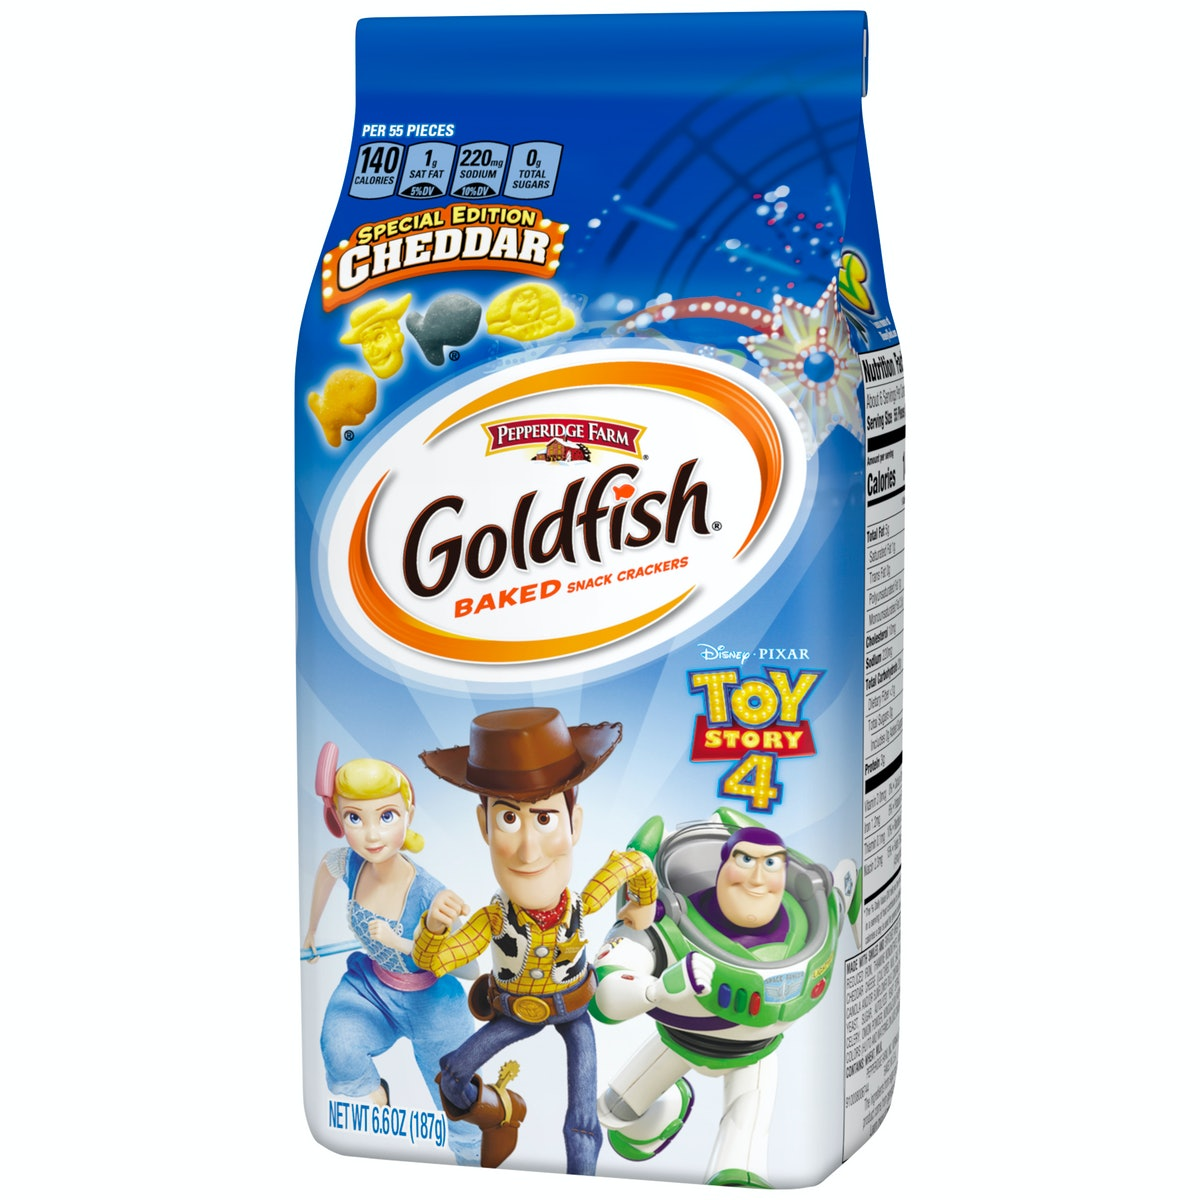 'Toy Story 4' Goldfish Crackers Will Take Your Tastebuds To Infinity And Beyond Beginning May 1